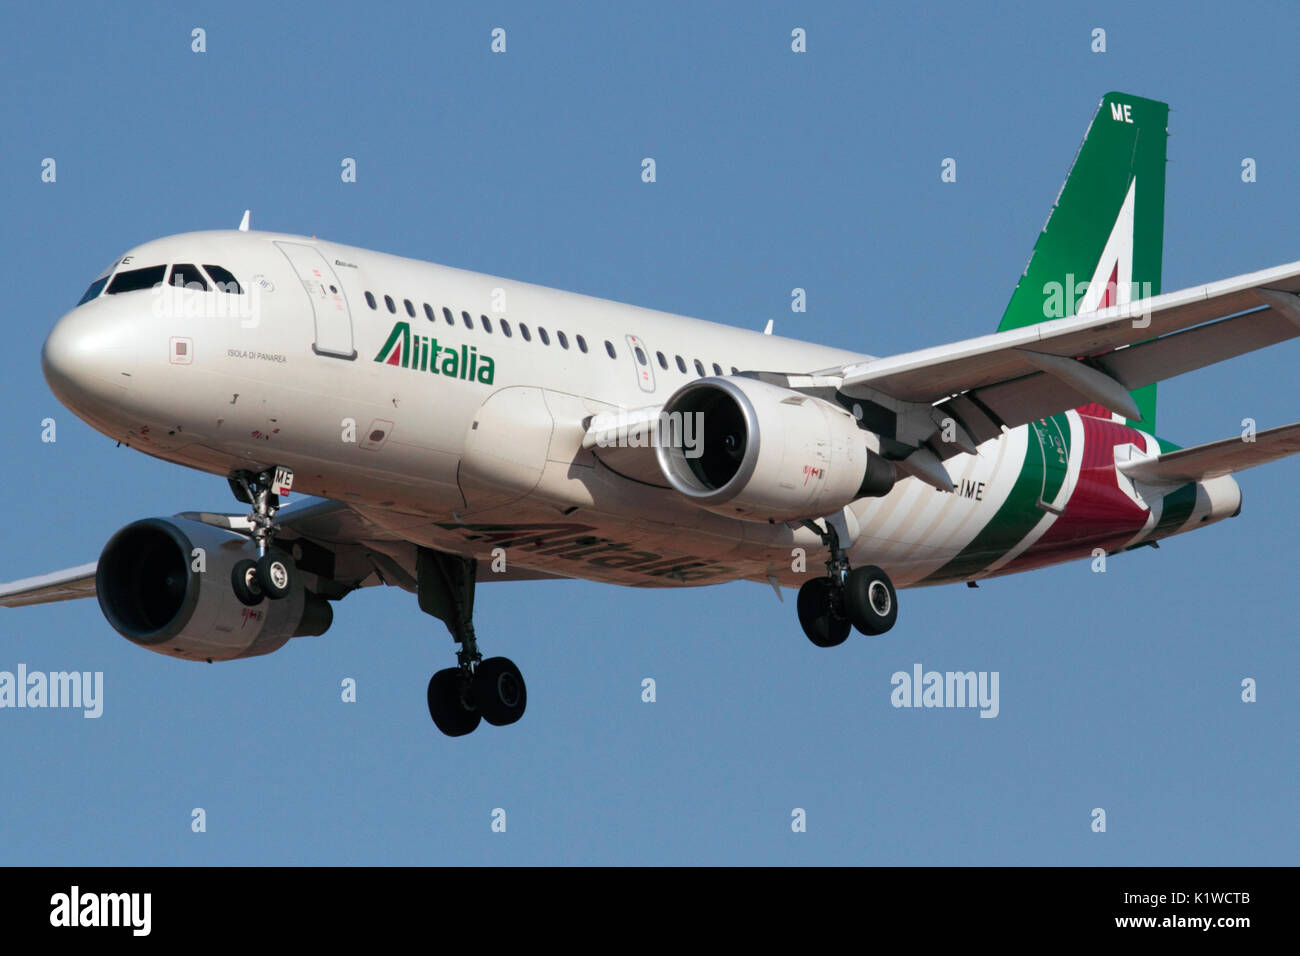 Closeup of an Alitalia Airbus A319 passenger jet plane on approach in the airline's new livery - Stock Image